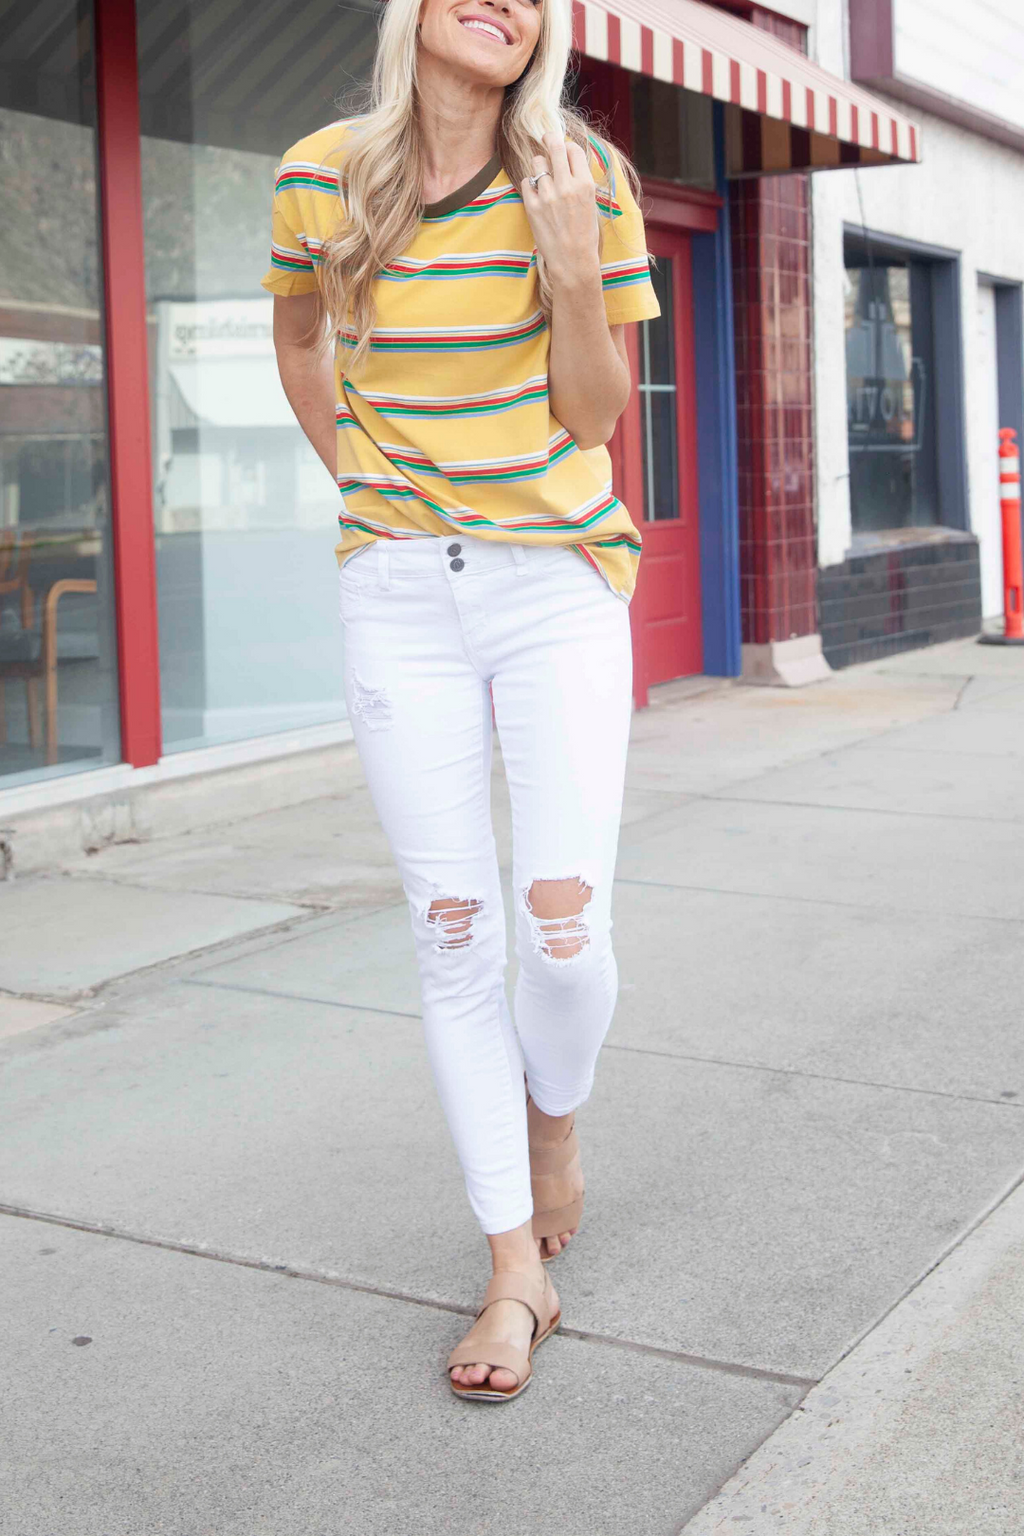 Haley White Skinny Jeans - only 9 & 11's left!